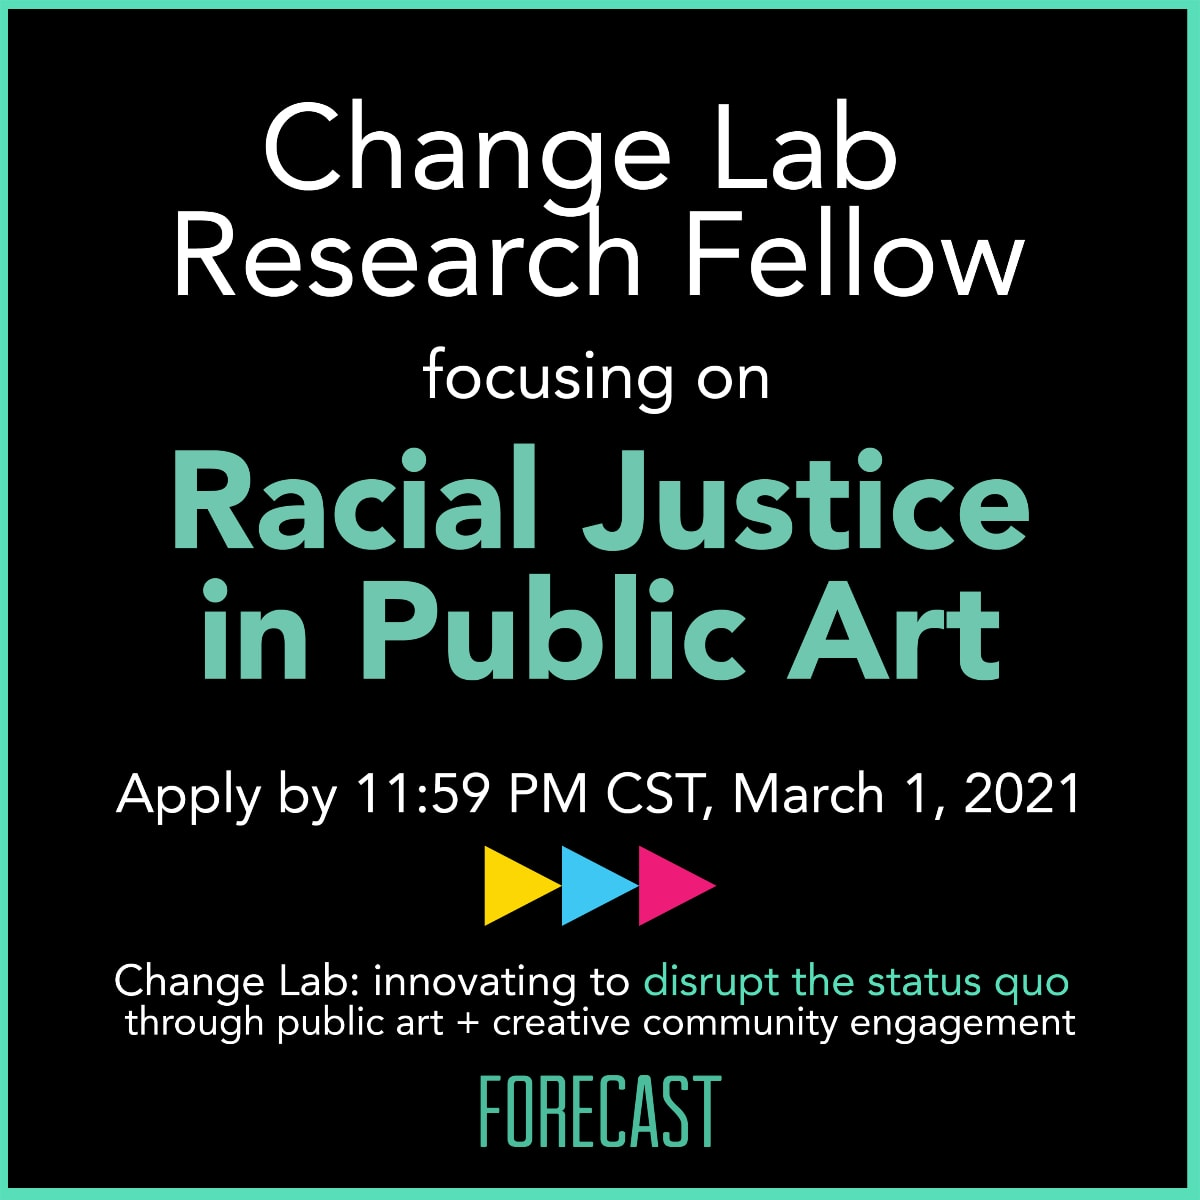 Forecast Change Lab Research Fellow focusing on Racial Justice in Public Art